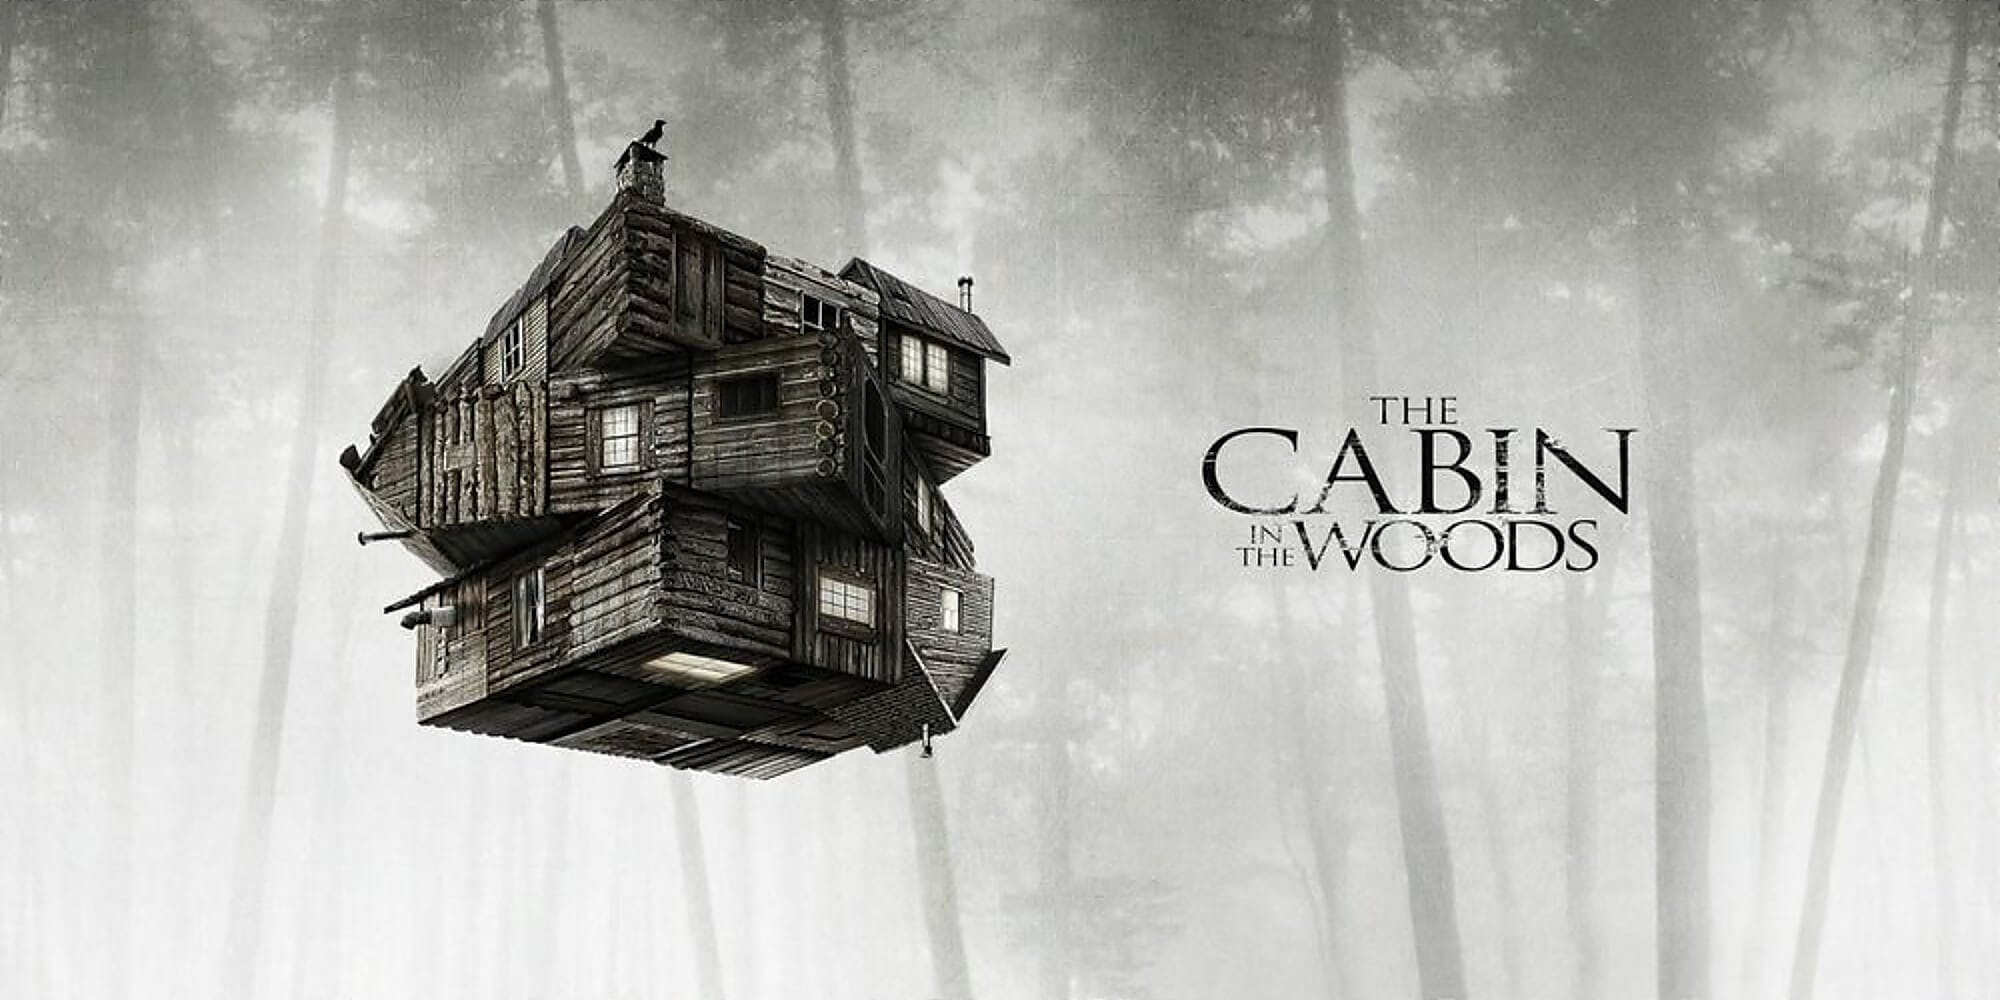 best horror movies on amazon prime 2020 the cabin in the woods